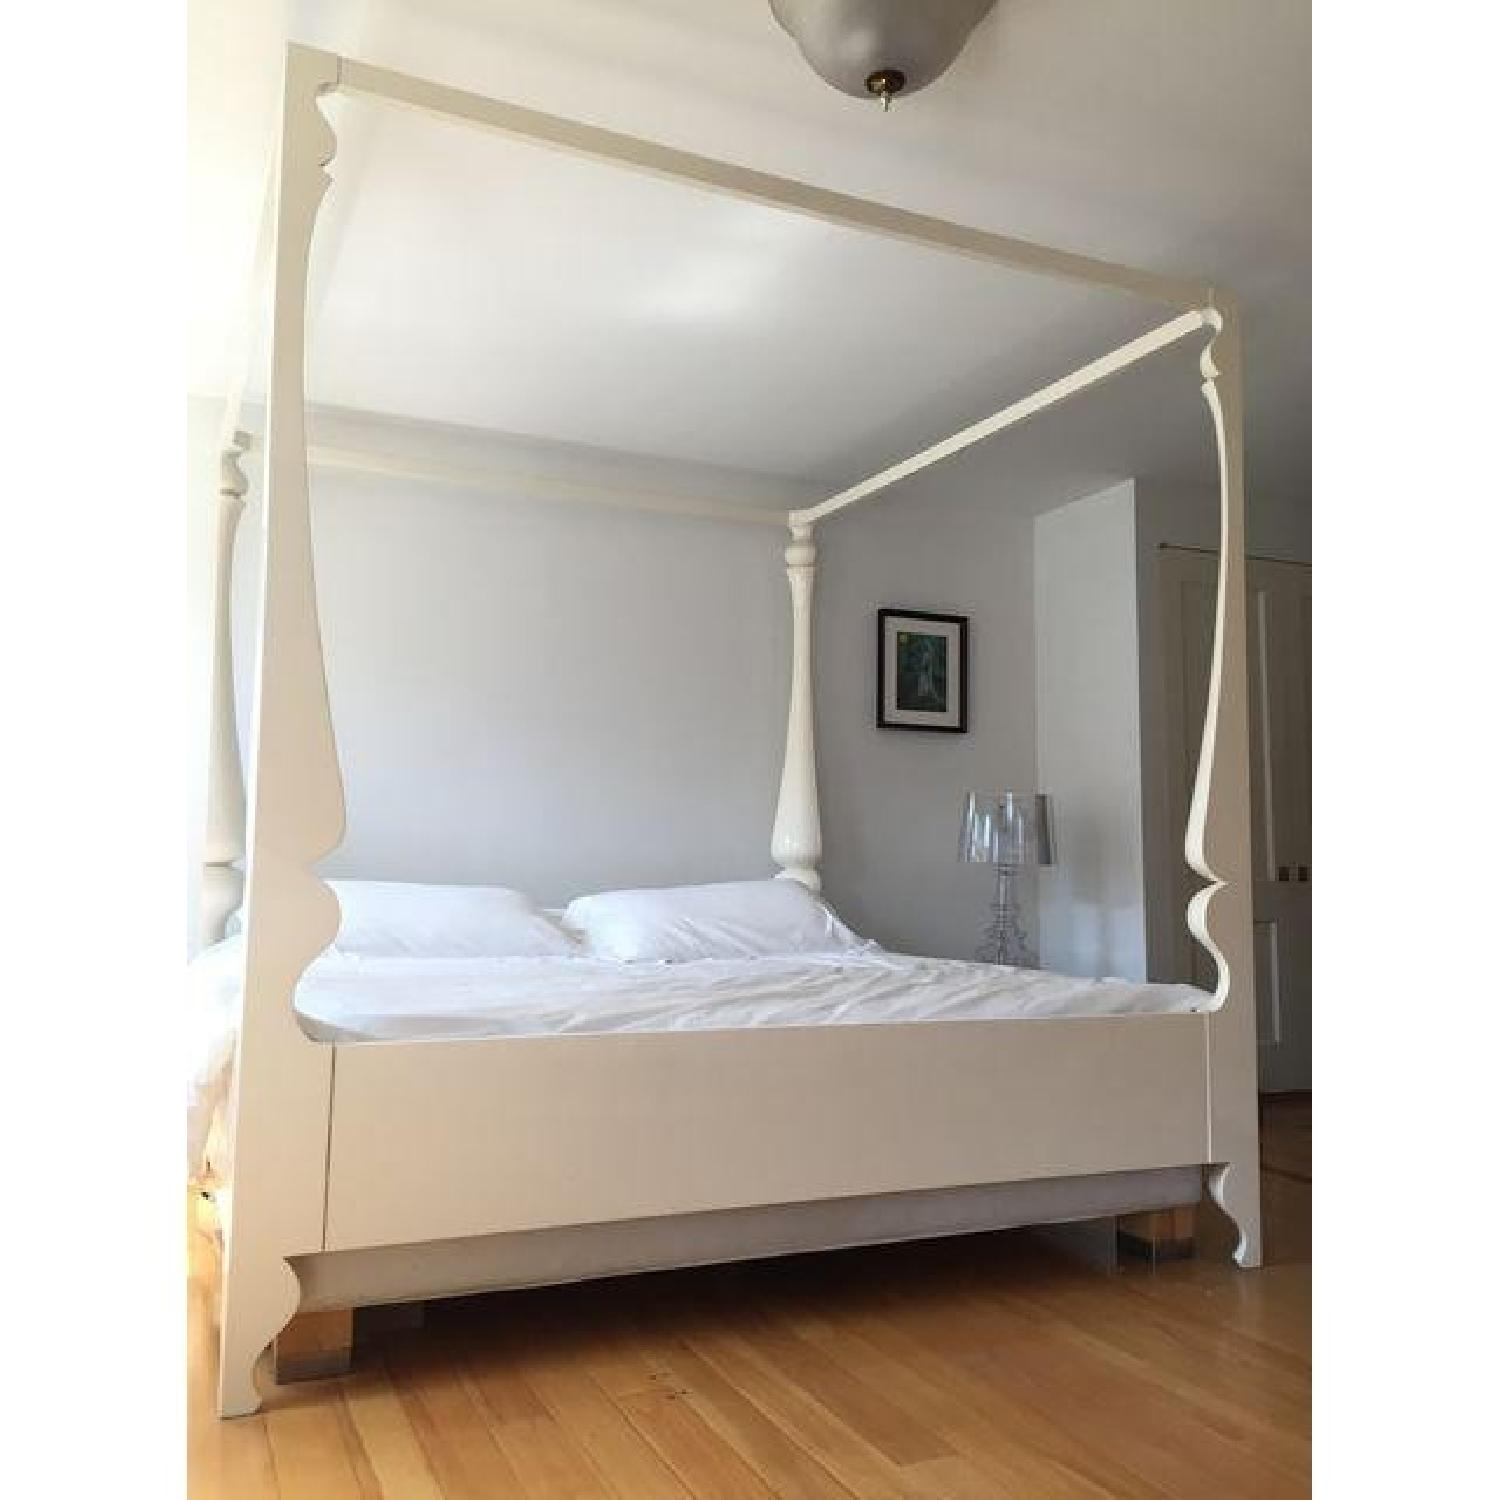 ABC Carpet and Home Louis Four Poster King Bed - image-6